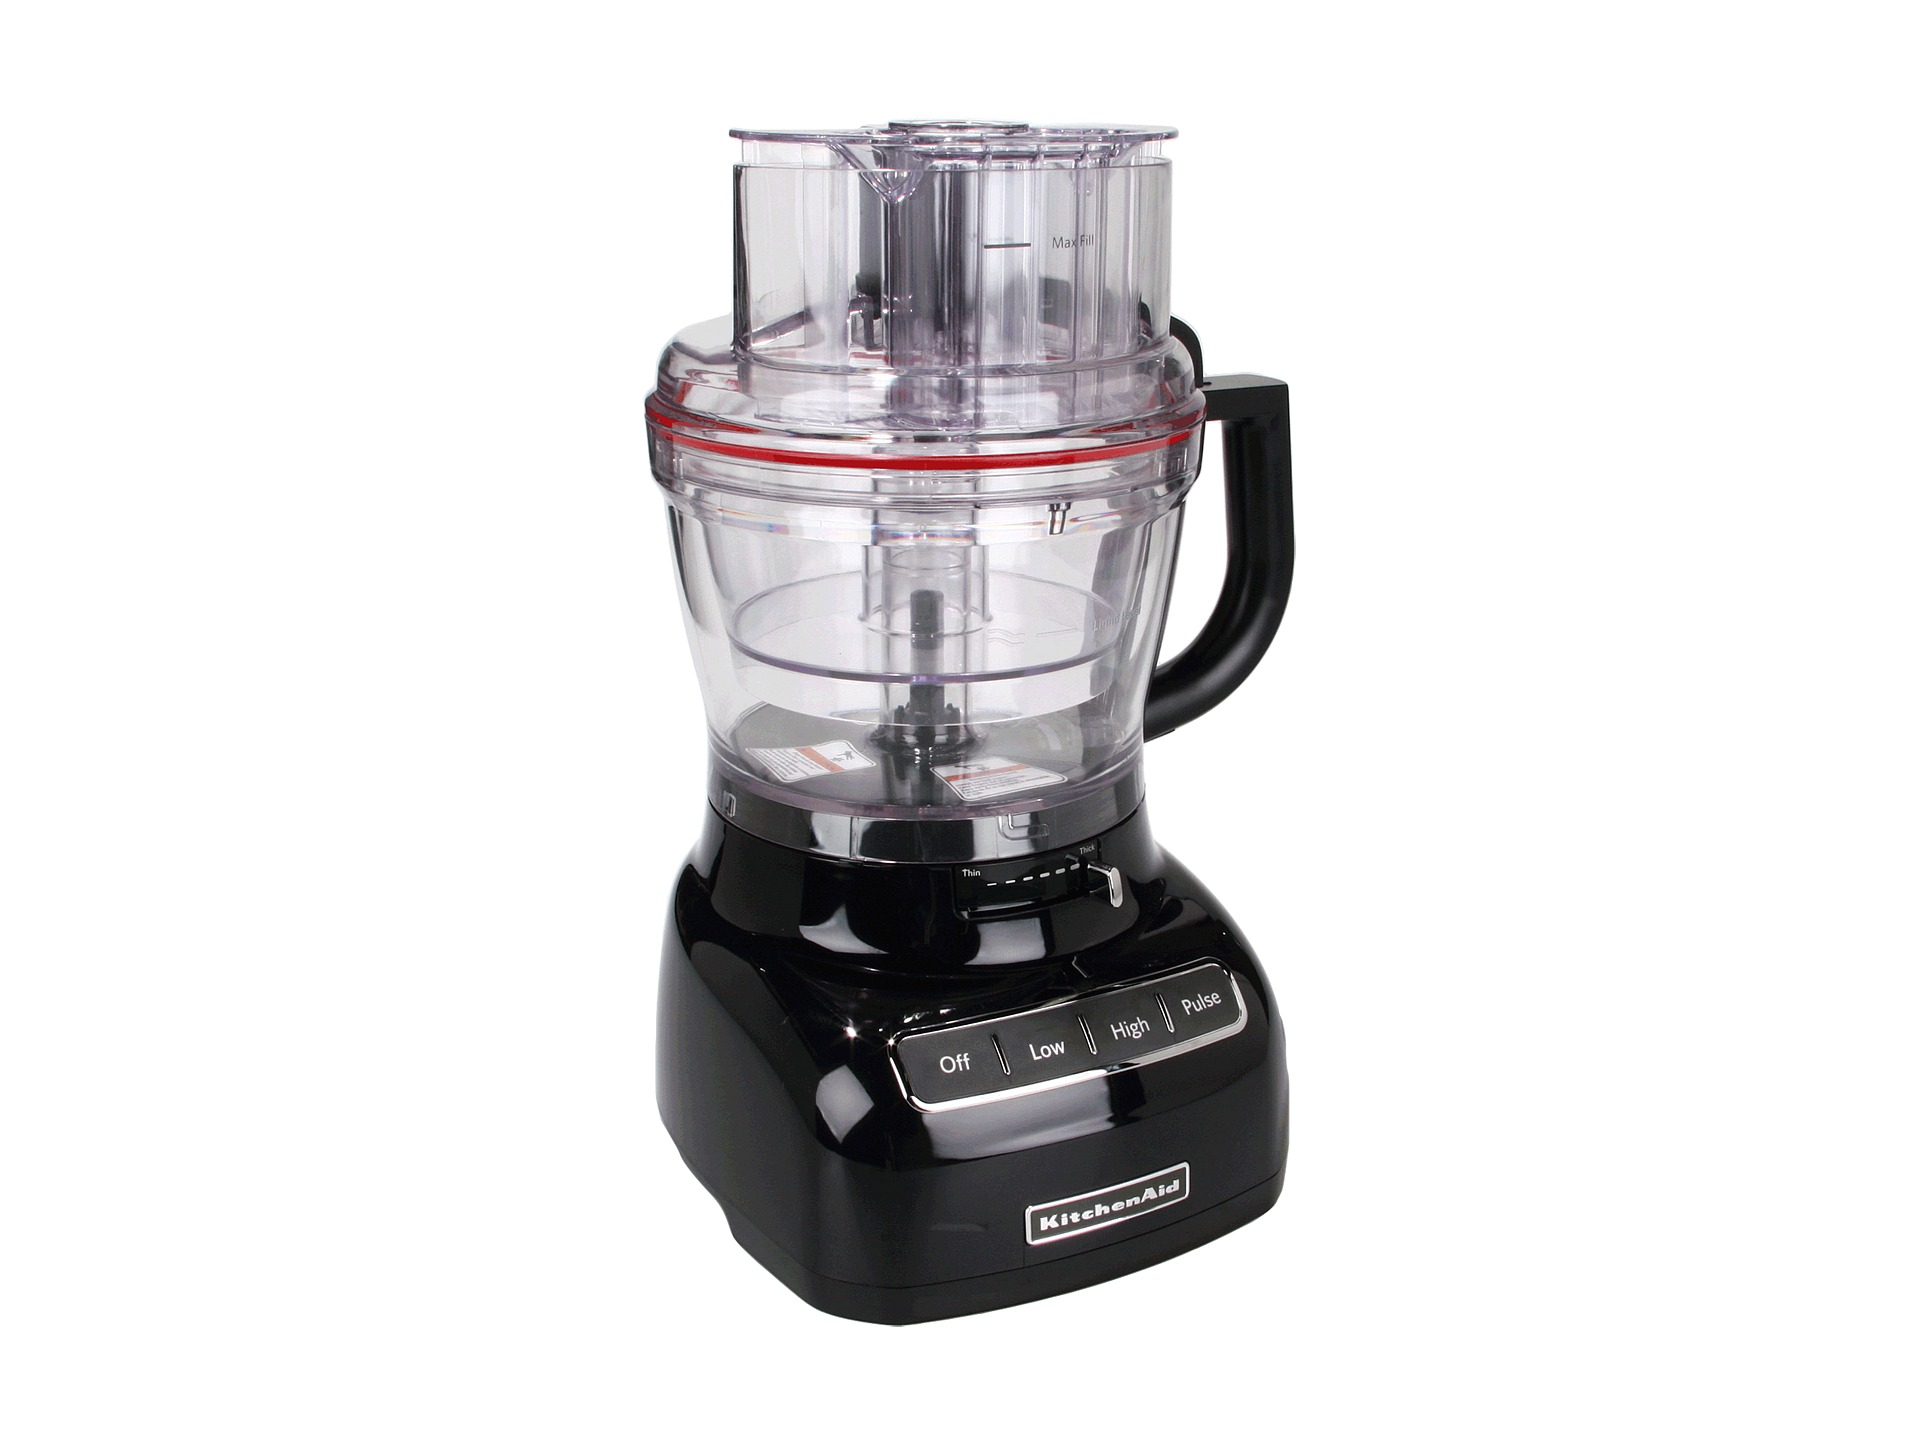 Kitchenaid kfp1333 food processor with mini bowl 13 cup for Kitchenaid food processor